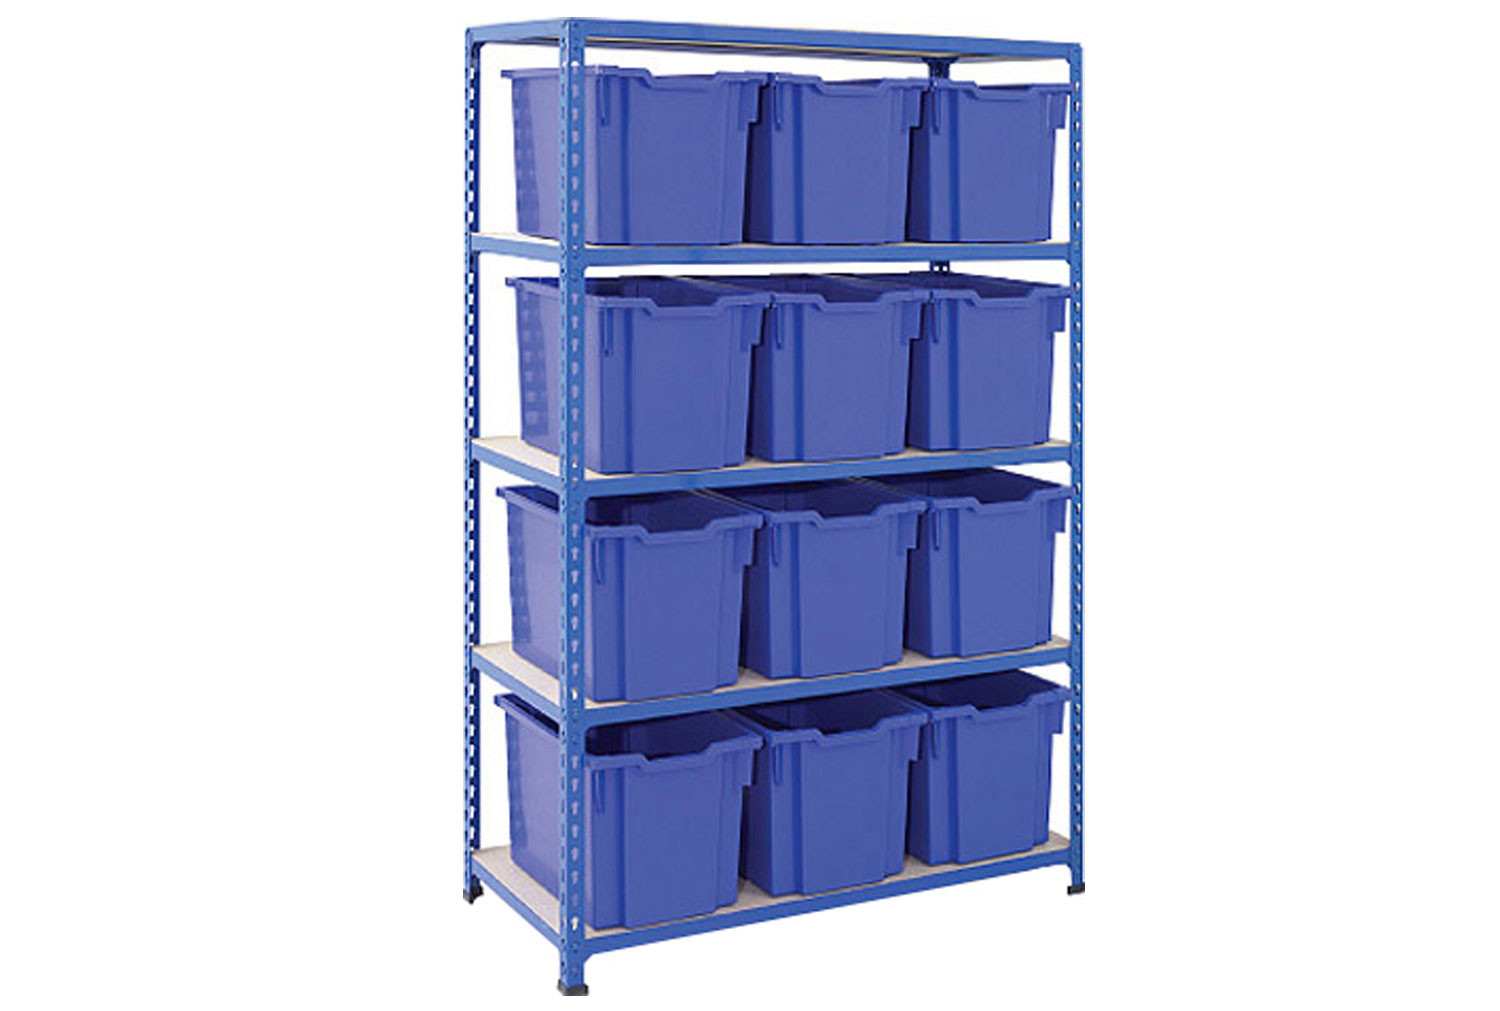 Rapid 2 shelving bay with 12 jumbo Gratnells trays